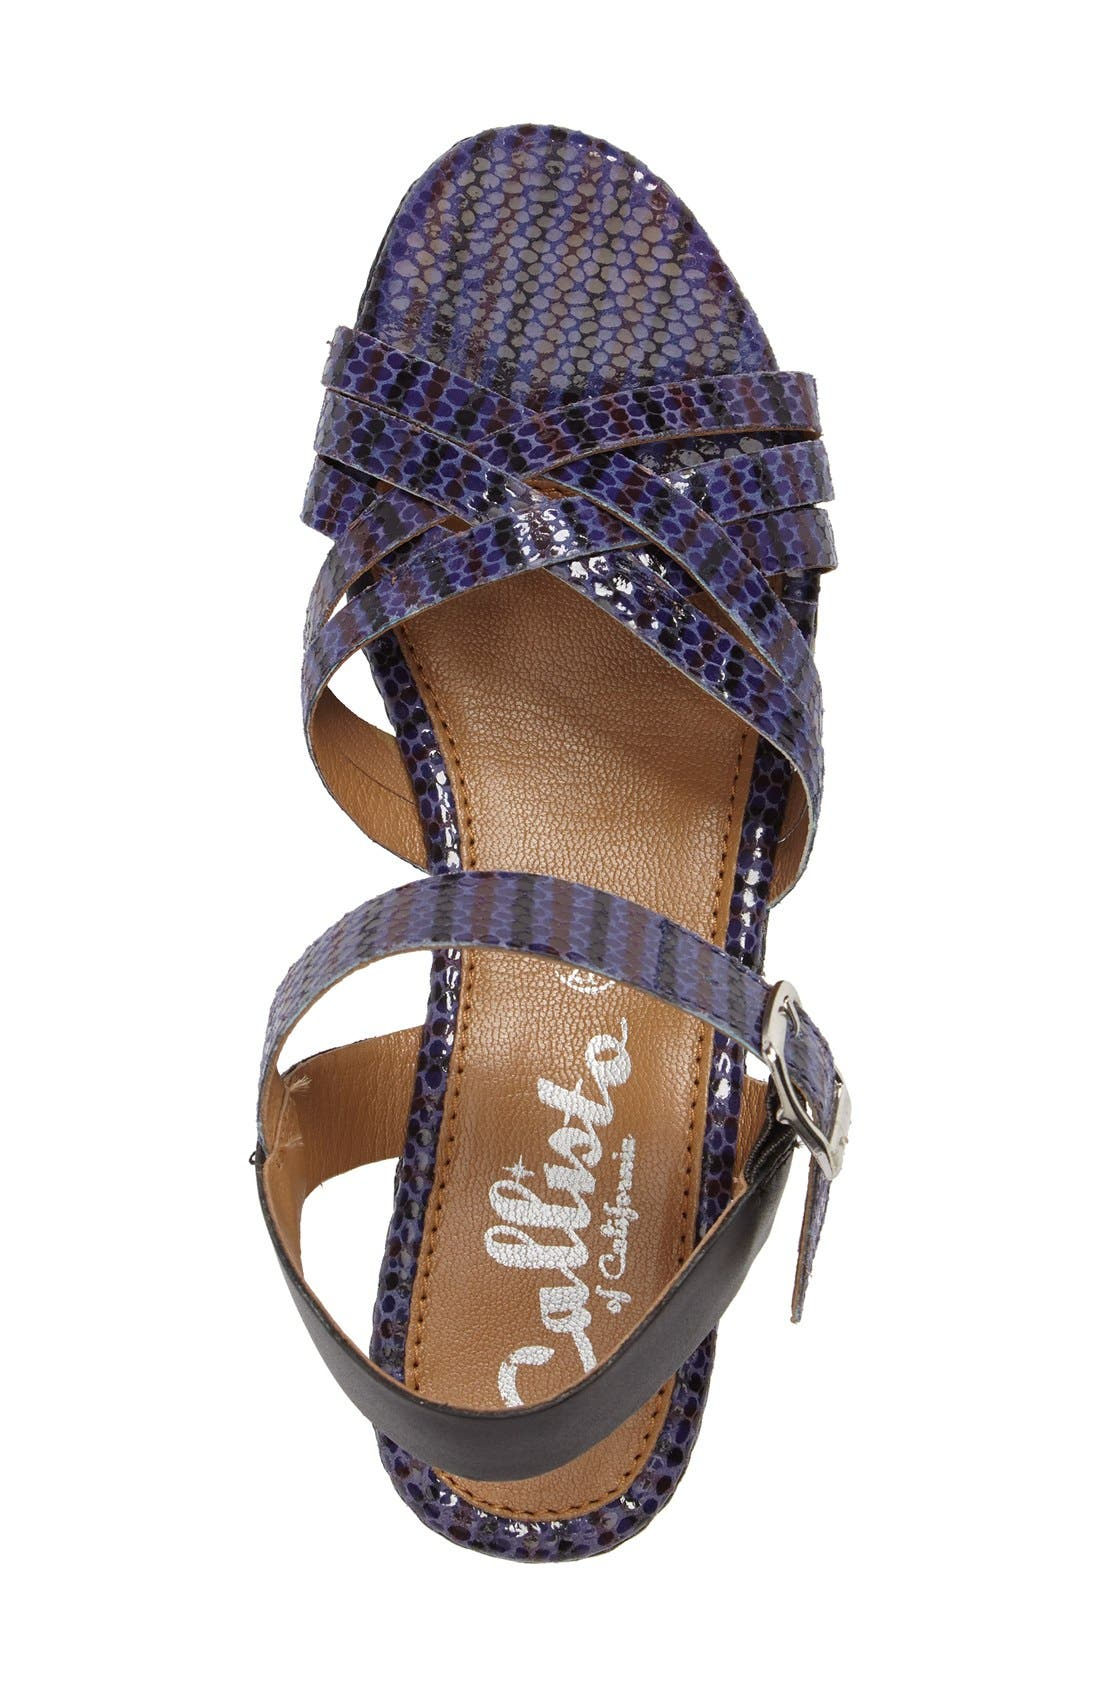 Valencia Platform Wedge Sandal,                             Alternate thumbnail 3, color,                             Blue Faux Leather